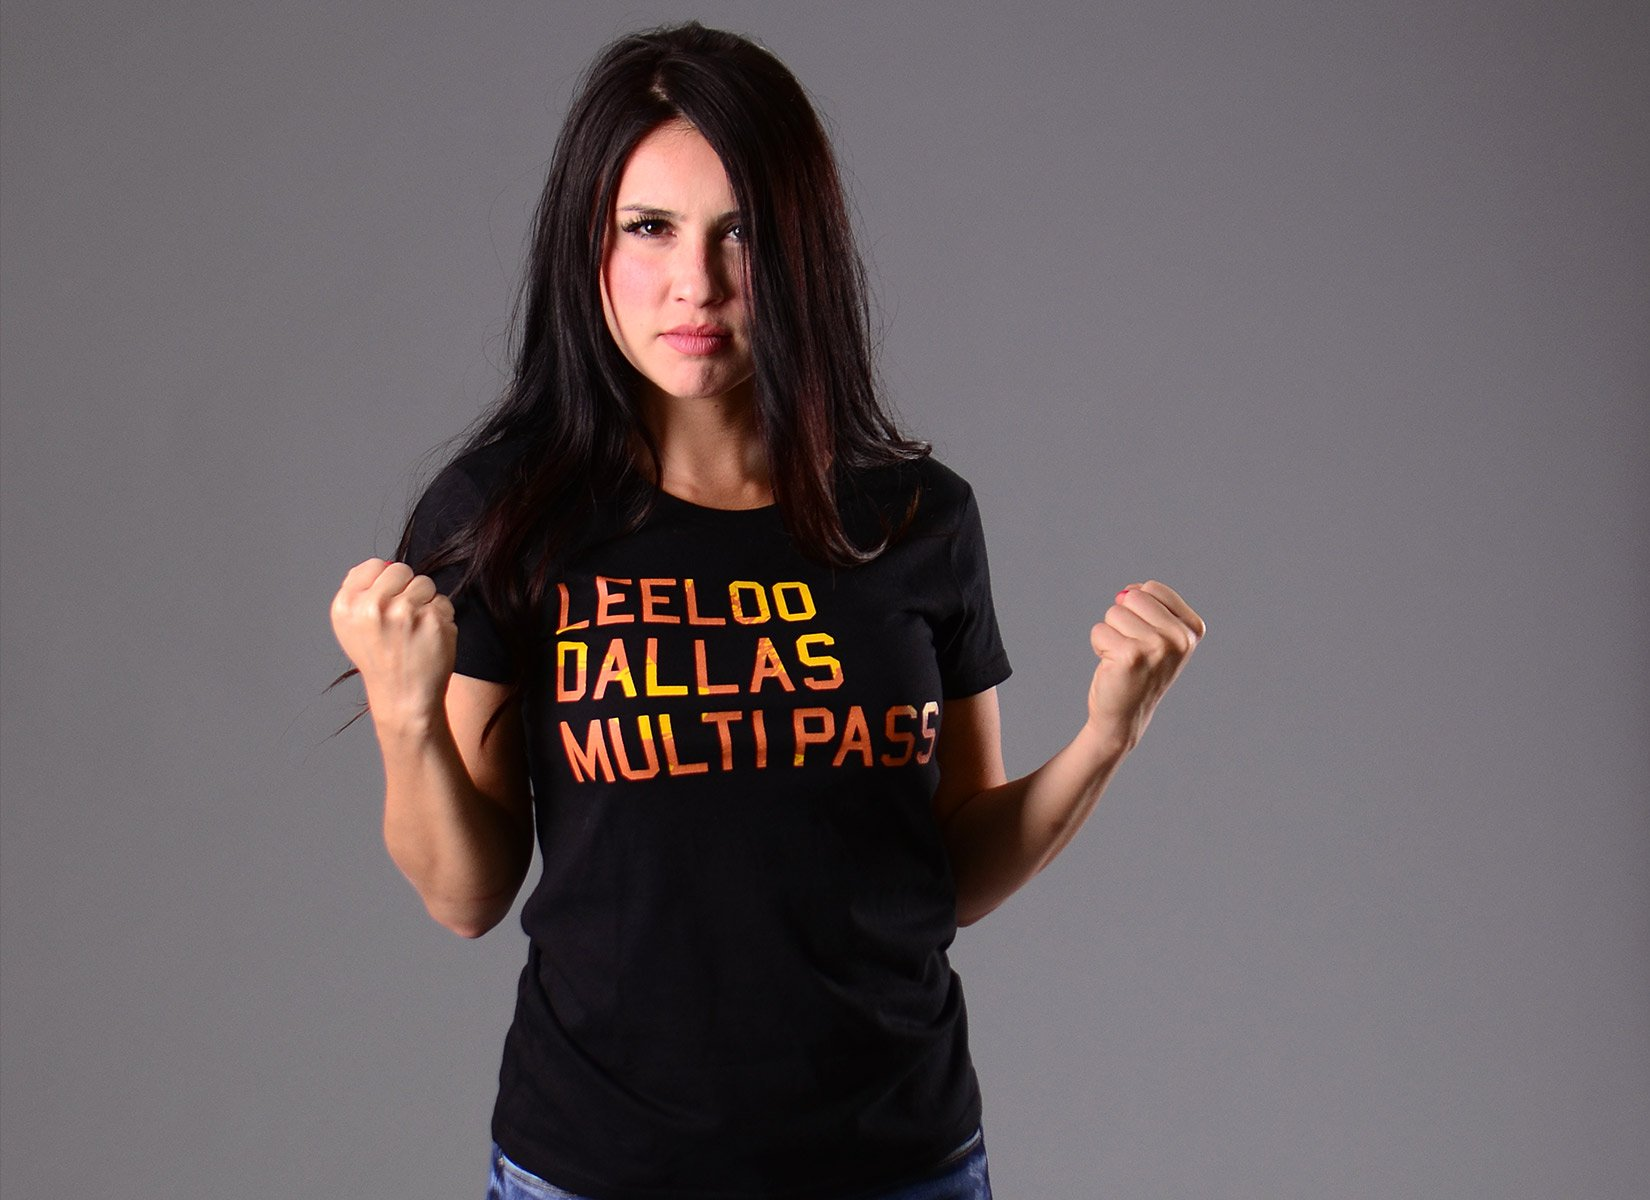 Leeloo Dallas Multipass on Womens T-Shirt